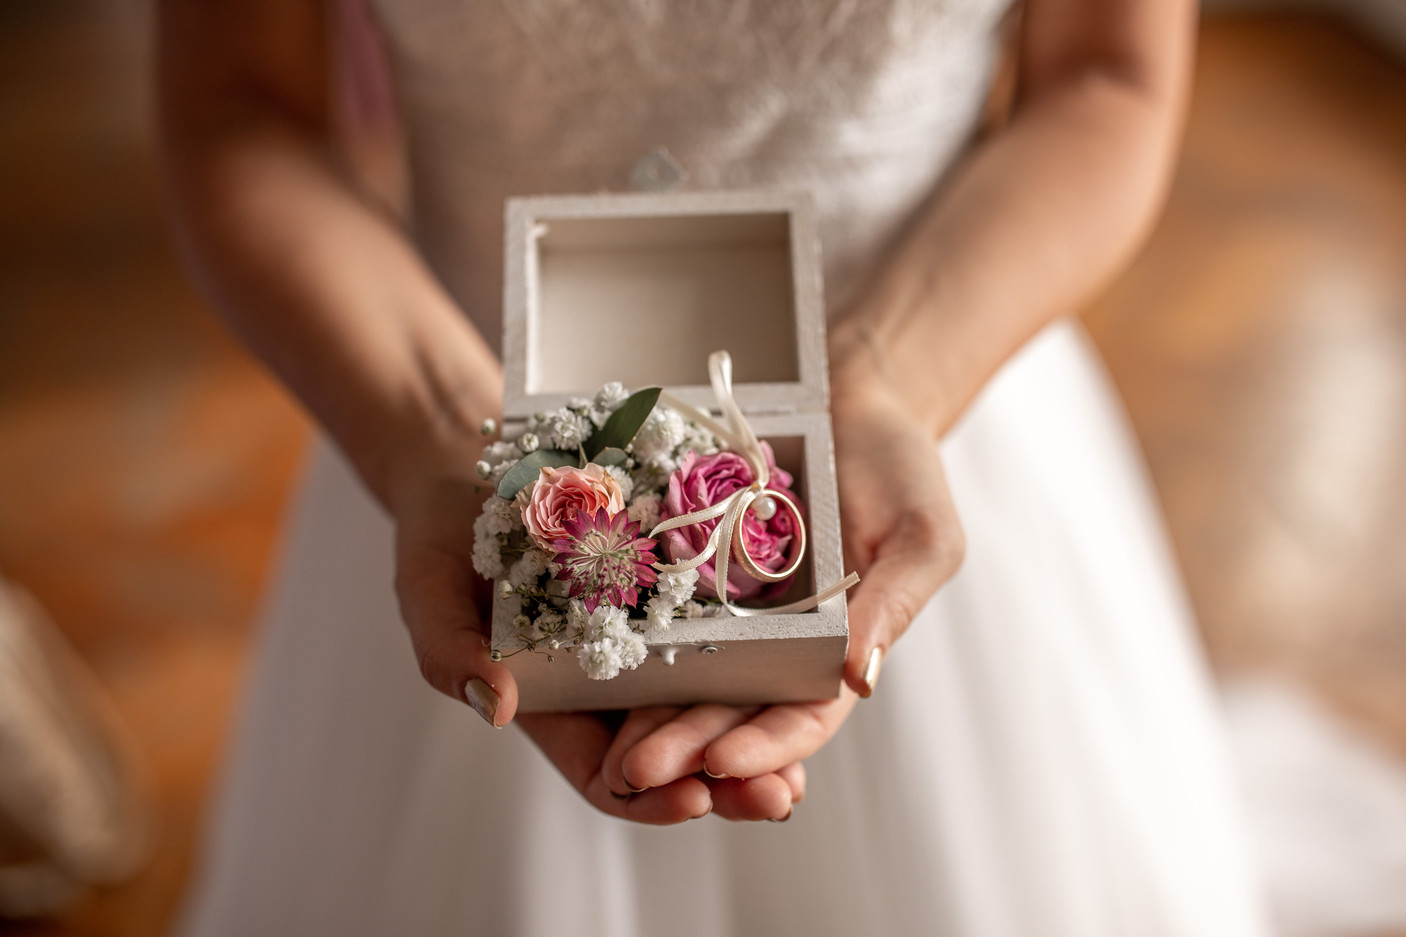 wedding decor in a box - beautiful small box with flowers in it